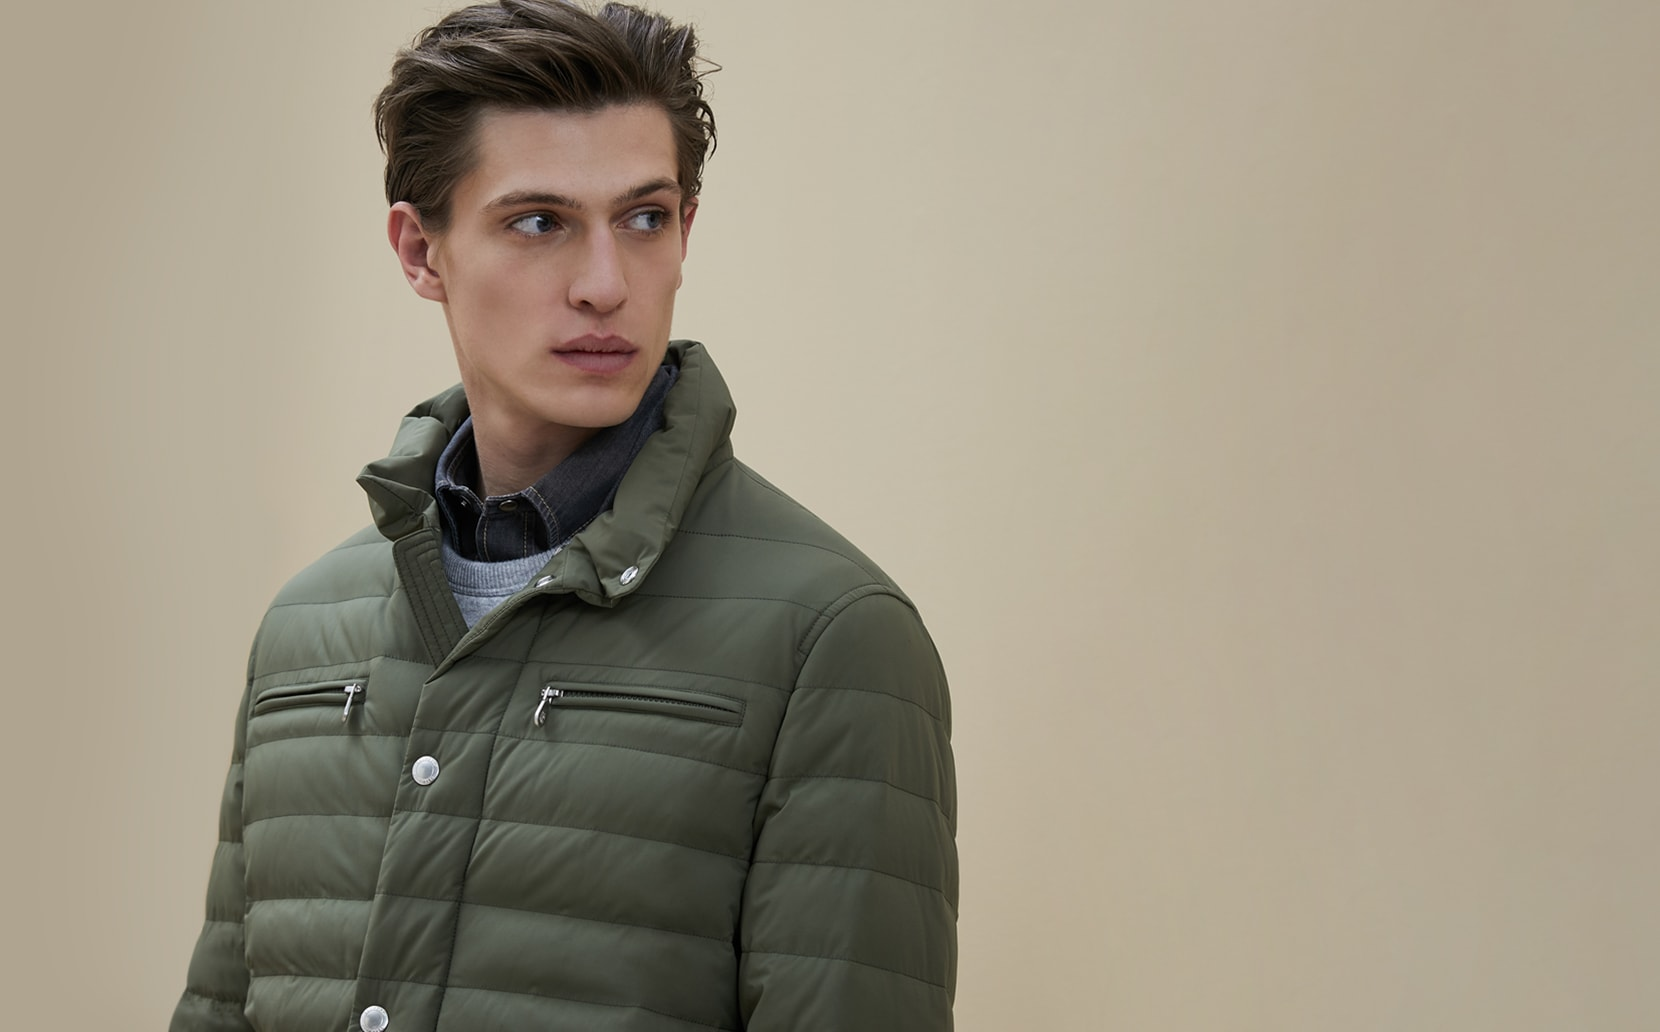 Fall-Winter 2019 - A kind of Green